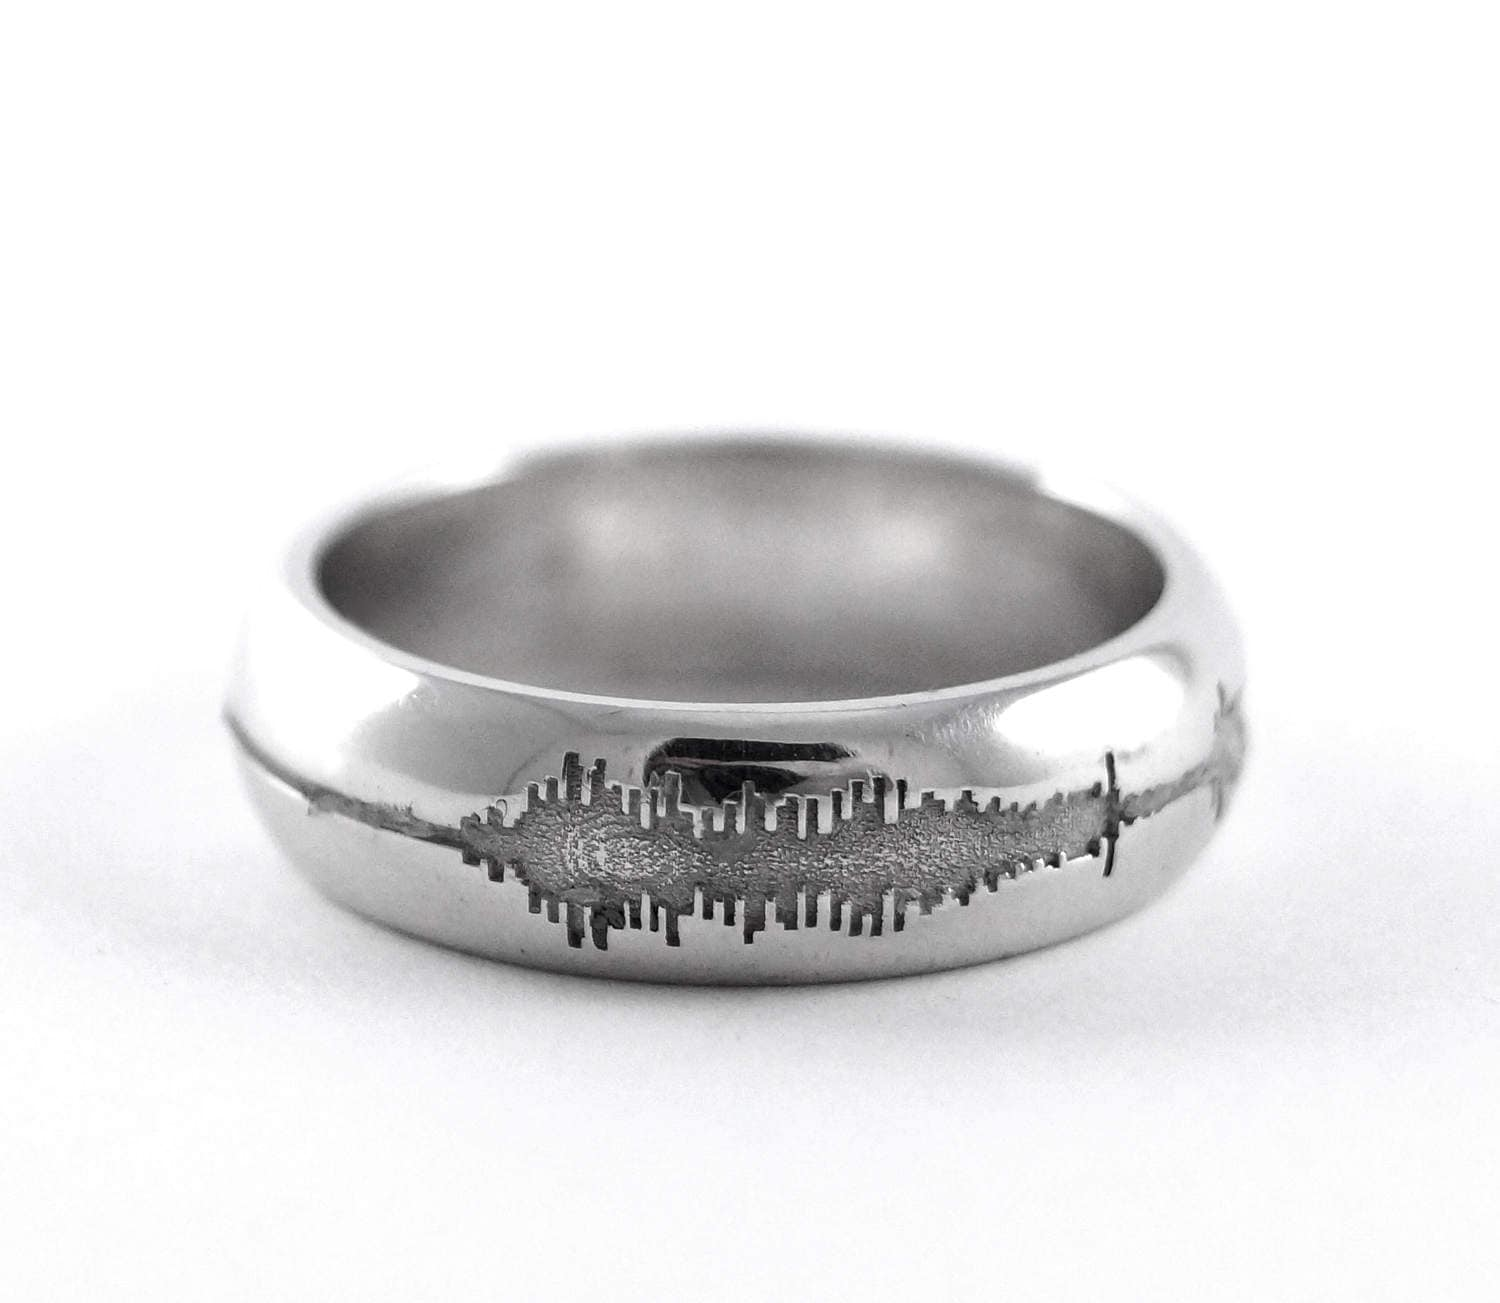 band unique custom il listing for geek soundwave wedding rings sound him geekery fullxfull nerd personalized ring gift wave titanium